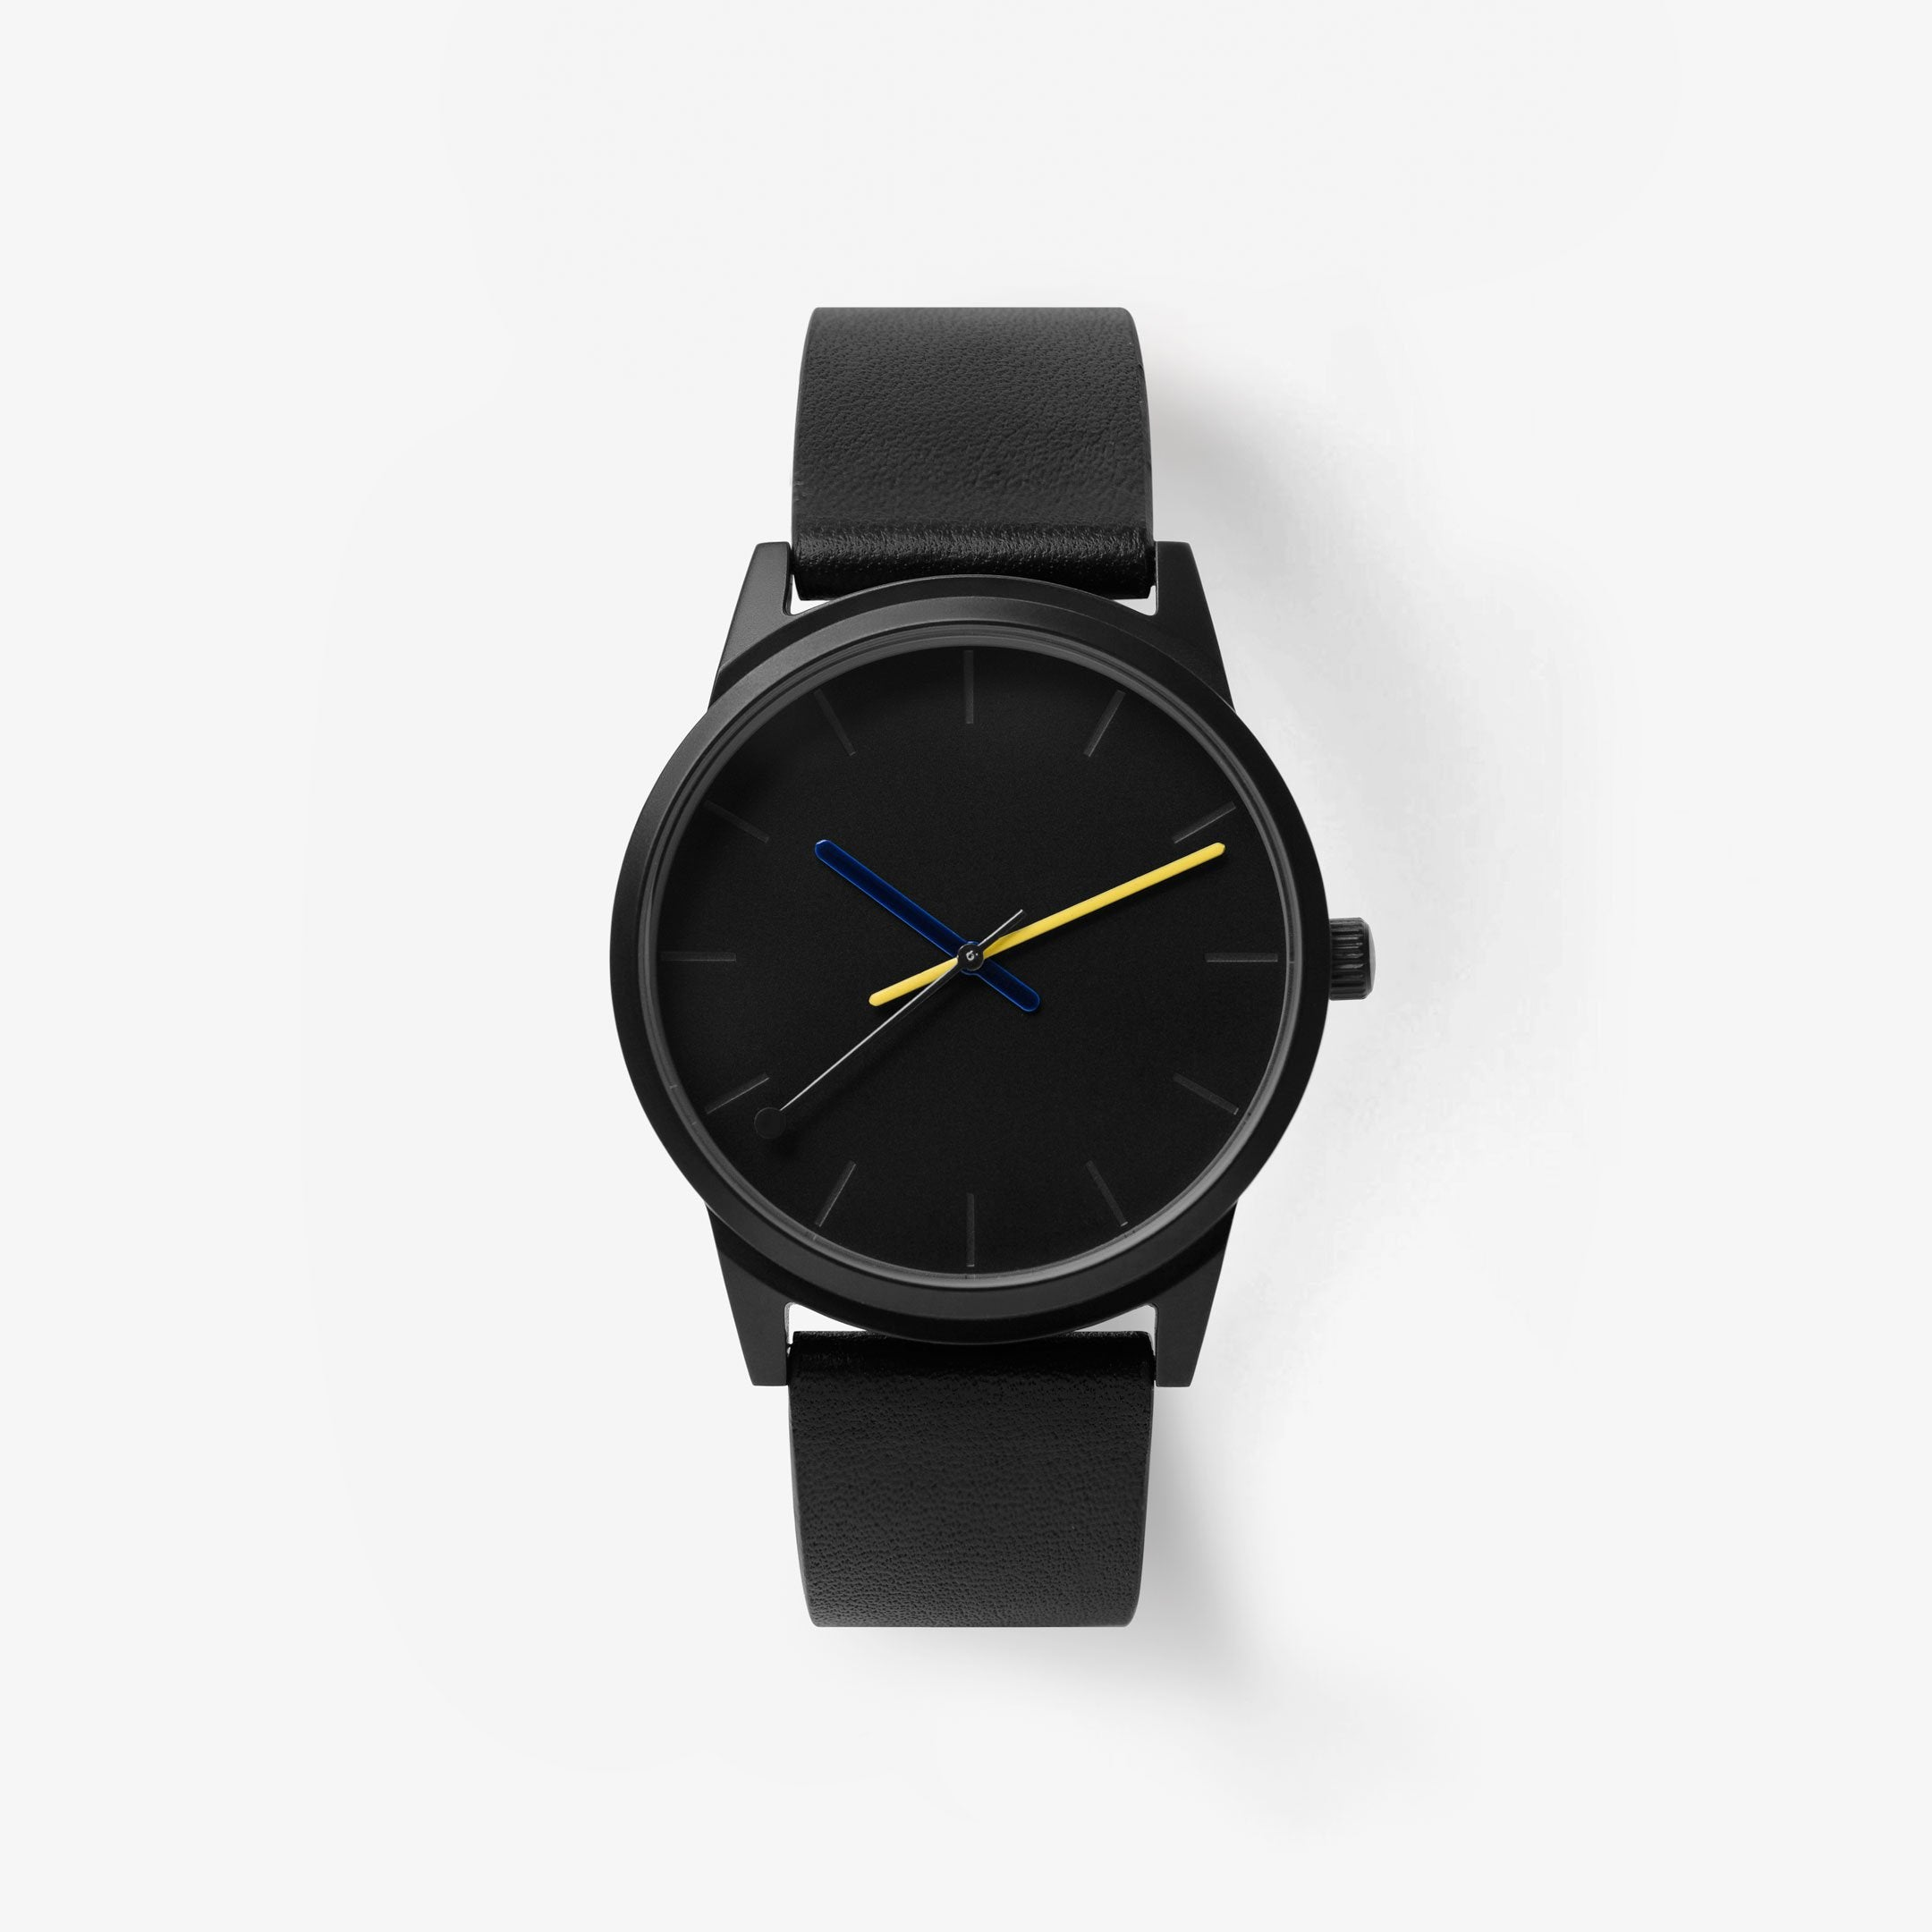 //cdn.shopify.com/s/files/1/0879/6650/products/breda-poketo-5021a-spectra-black-leather-band-collaboration-watch-front_1024x1024.jpg?v=1557421007